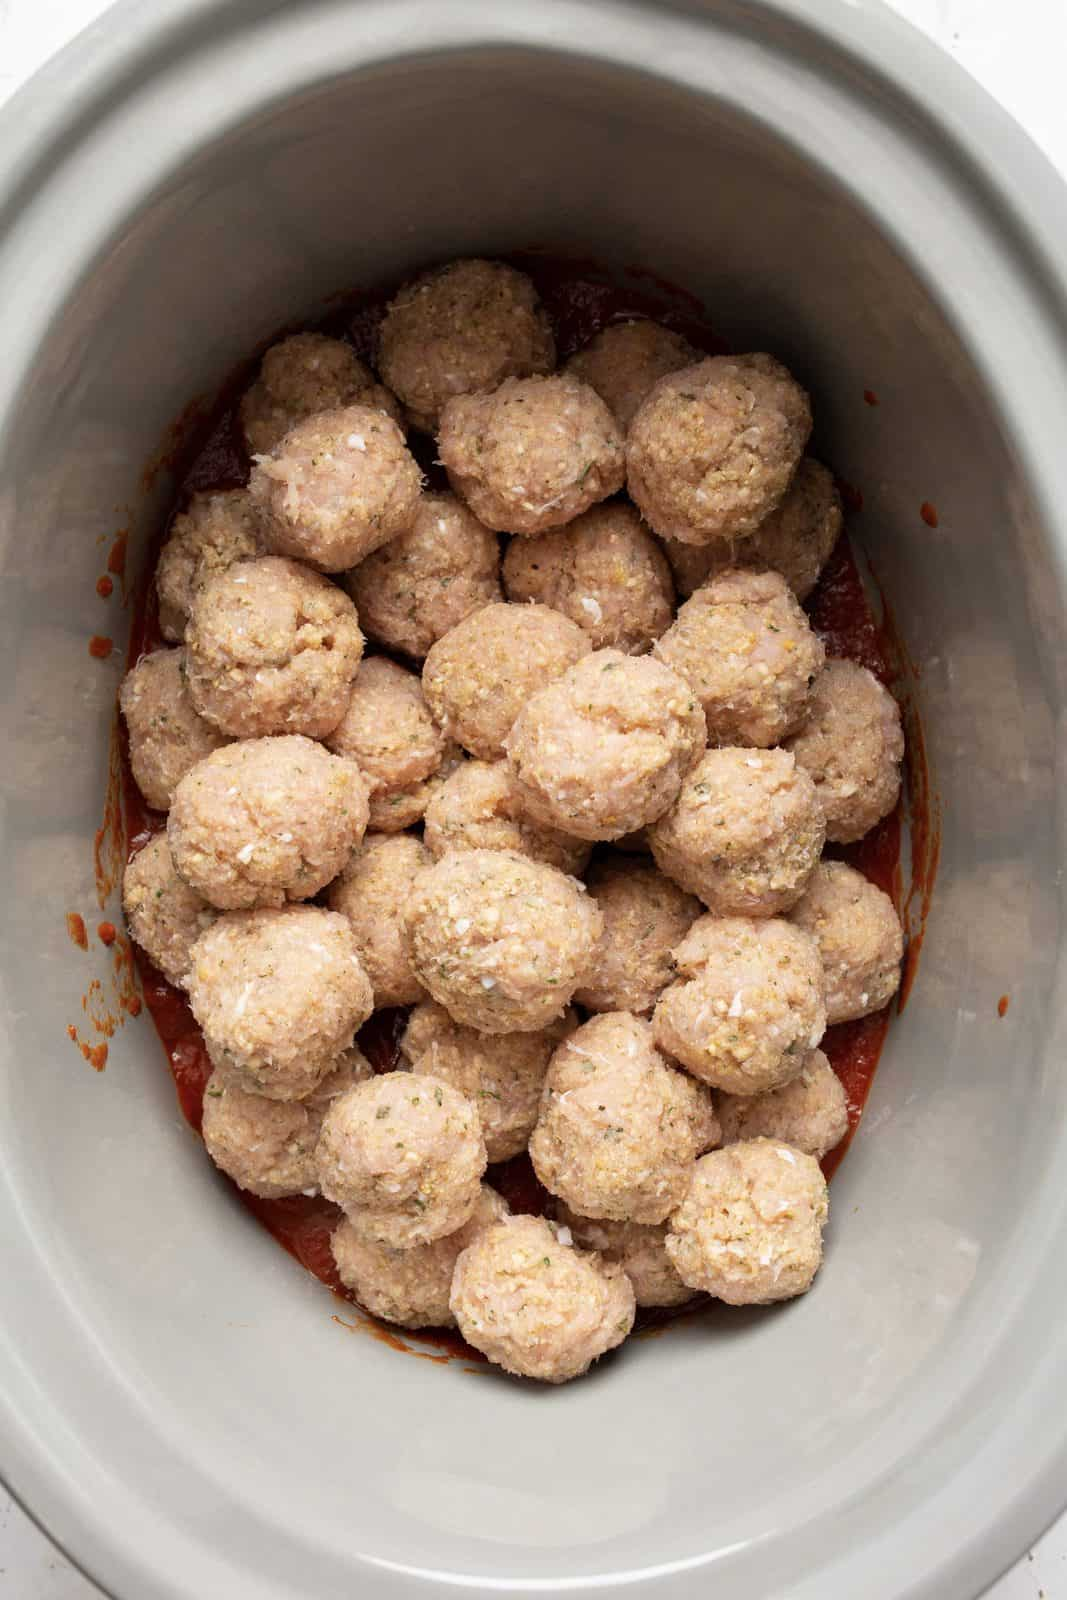 Meatballs in crock pot over a layer of sauce.